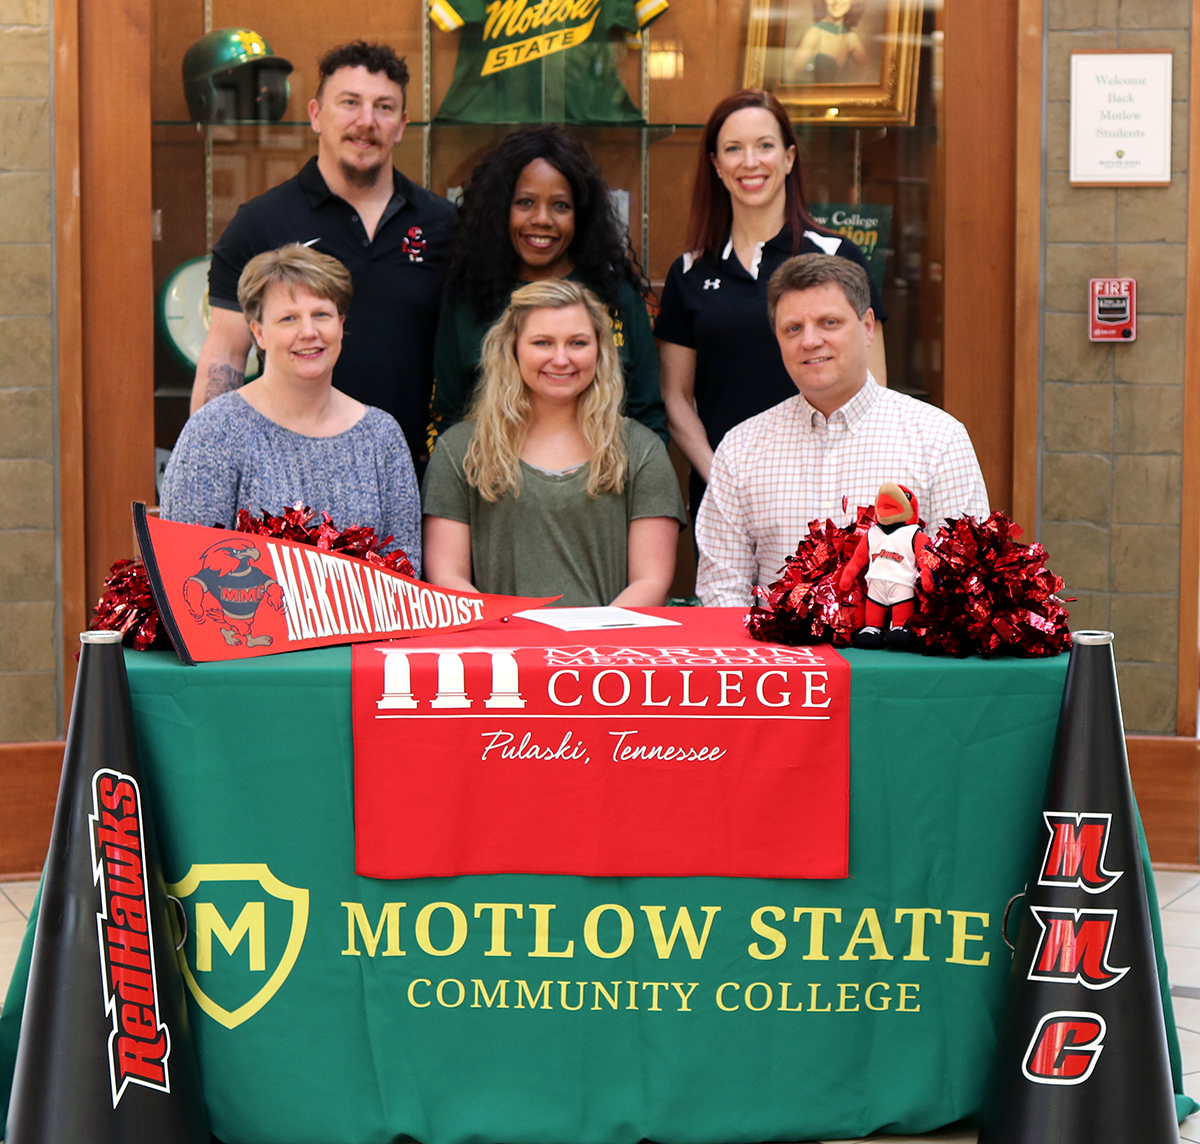 Joining Emily for the signing ceremony are, seated from left, Michelle Ray, mother; Emily Jordan Ray; and Cameron Ray, father. Standing from left, Micah Hartsfield, Martin Methodist head cheer coach; Bertha Smith, Motlow cheer coach/sponsor; and Monica Hartsfield, Martin Methodist head cheer/dance coach.